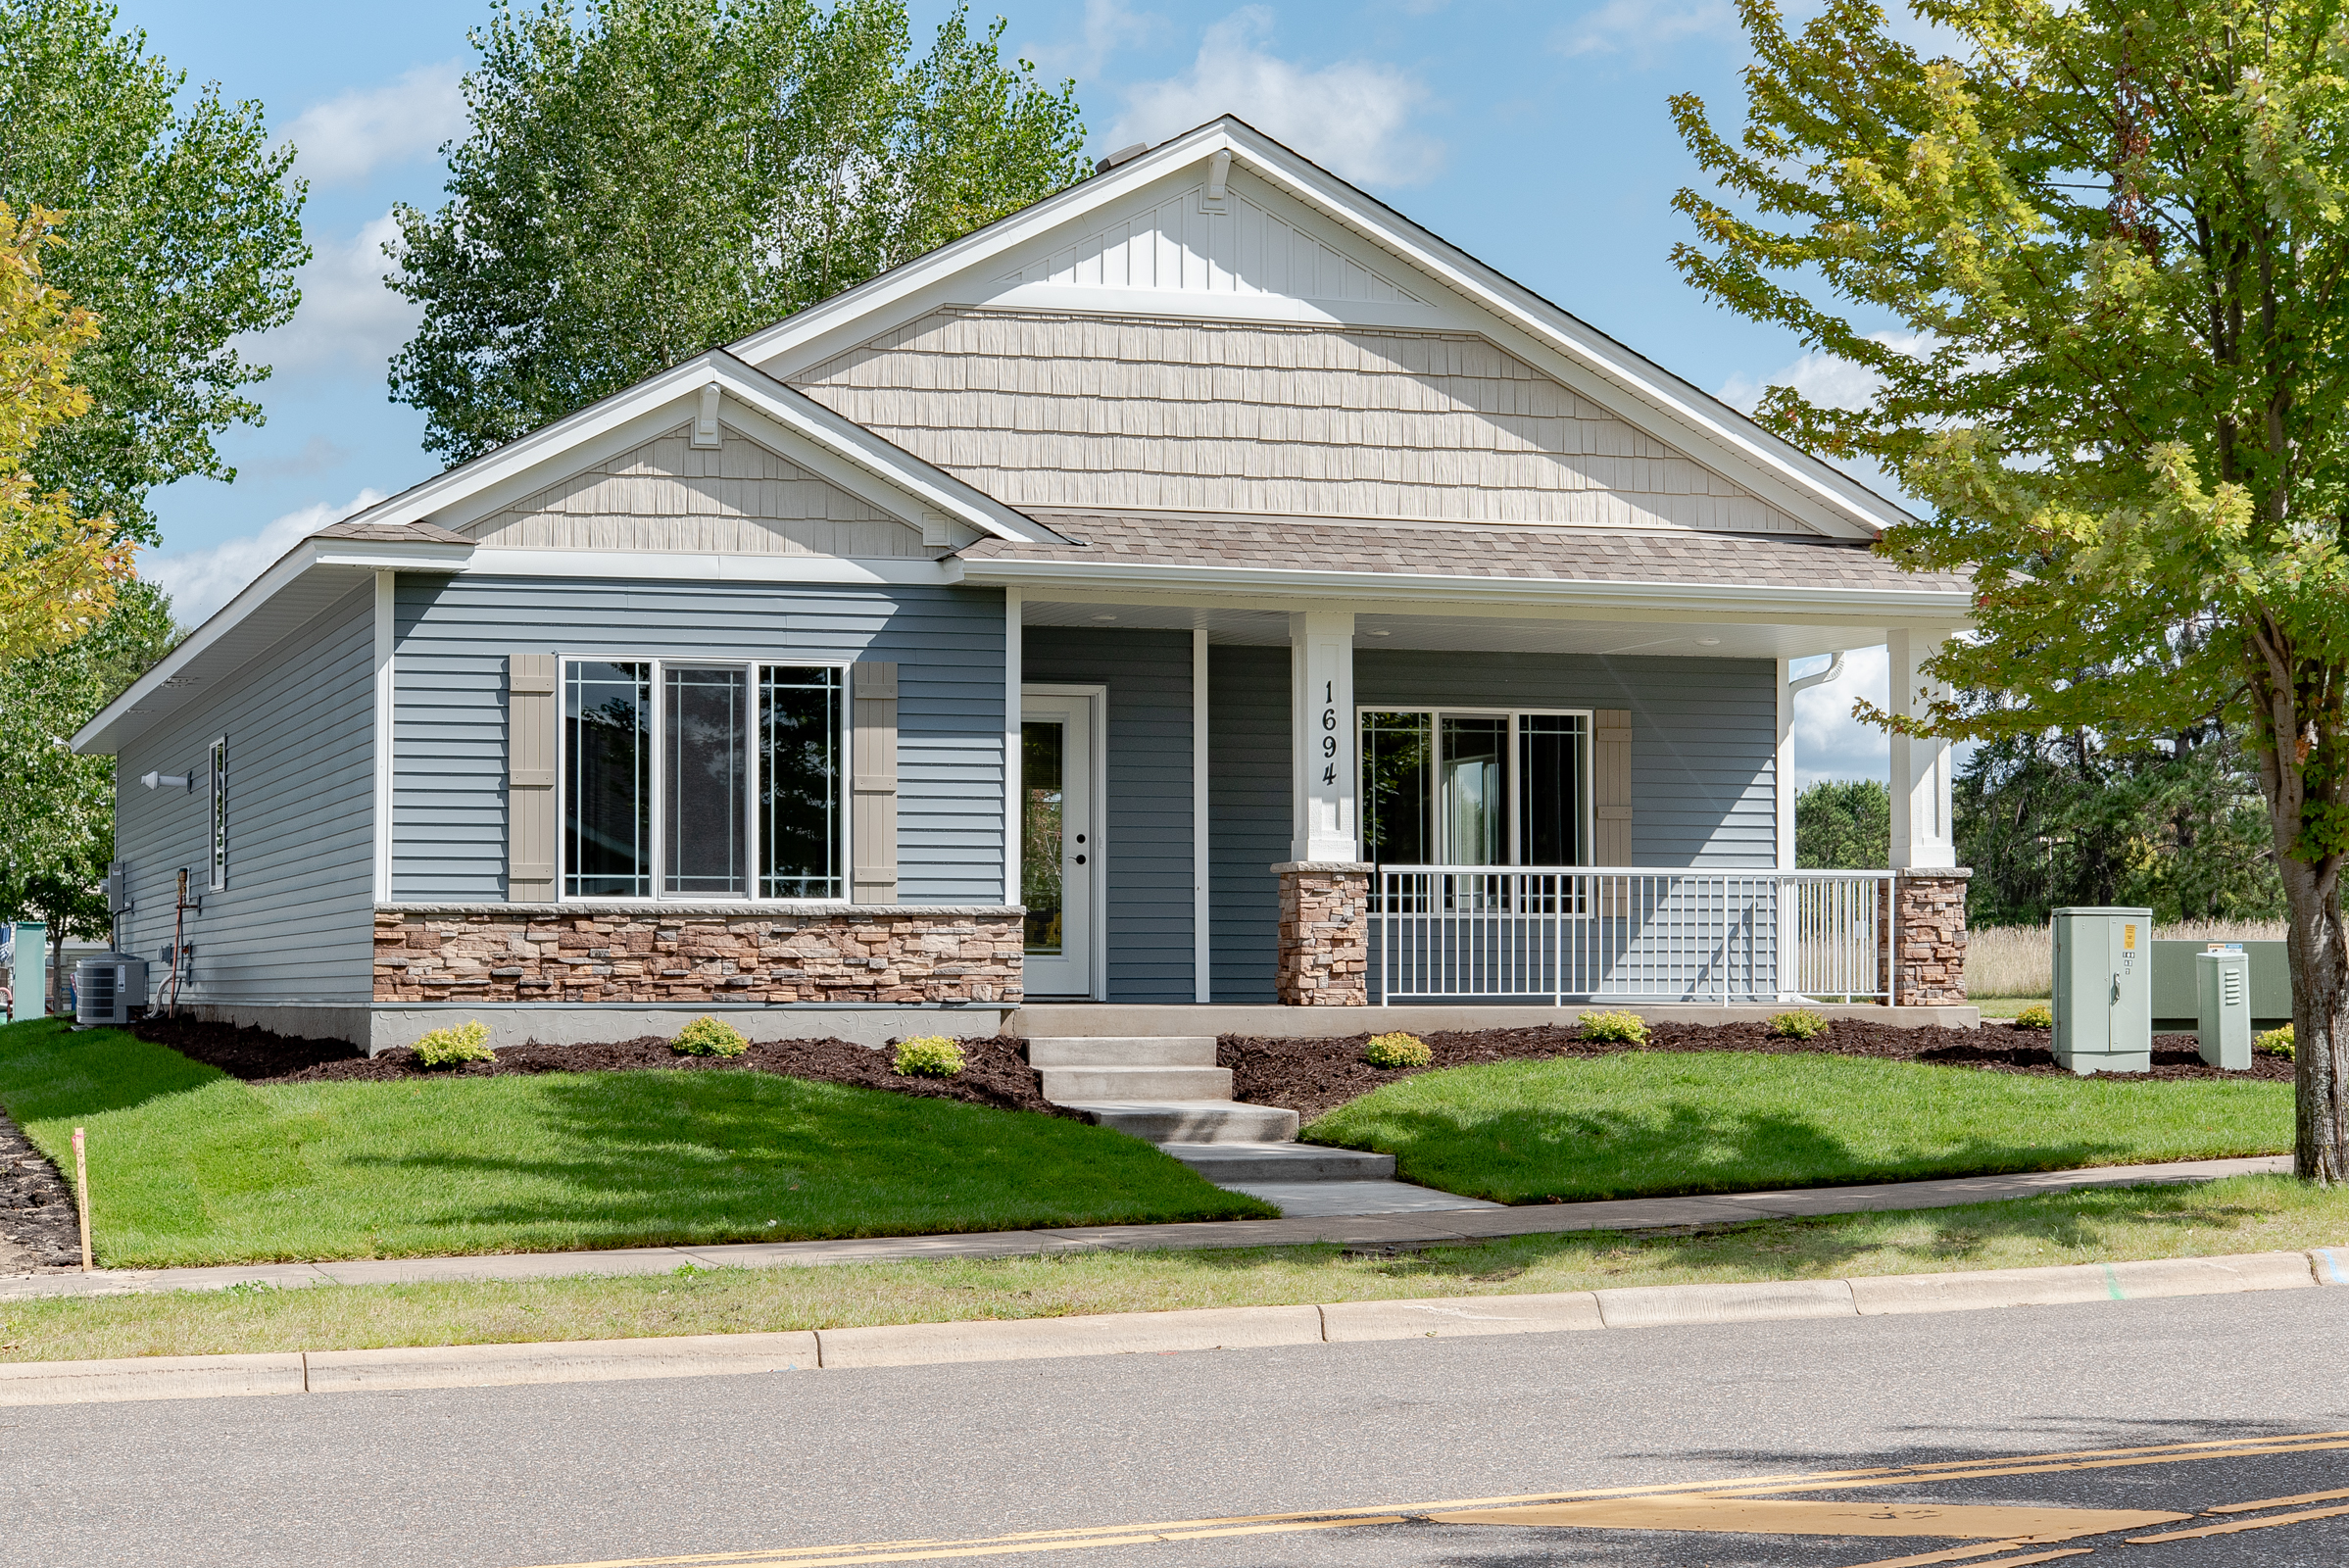 1694 Fern St. SCambridge, MN - The Evaline (Alley) by Semler Construction2BR/2BA-1436 FSFOne LevelCompleted New ConstructionUnder Contract